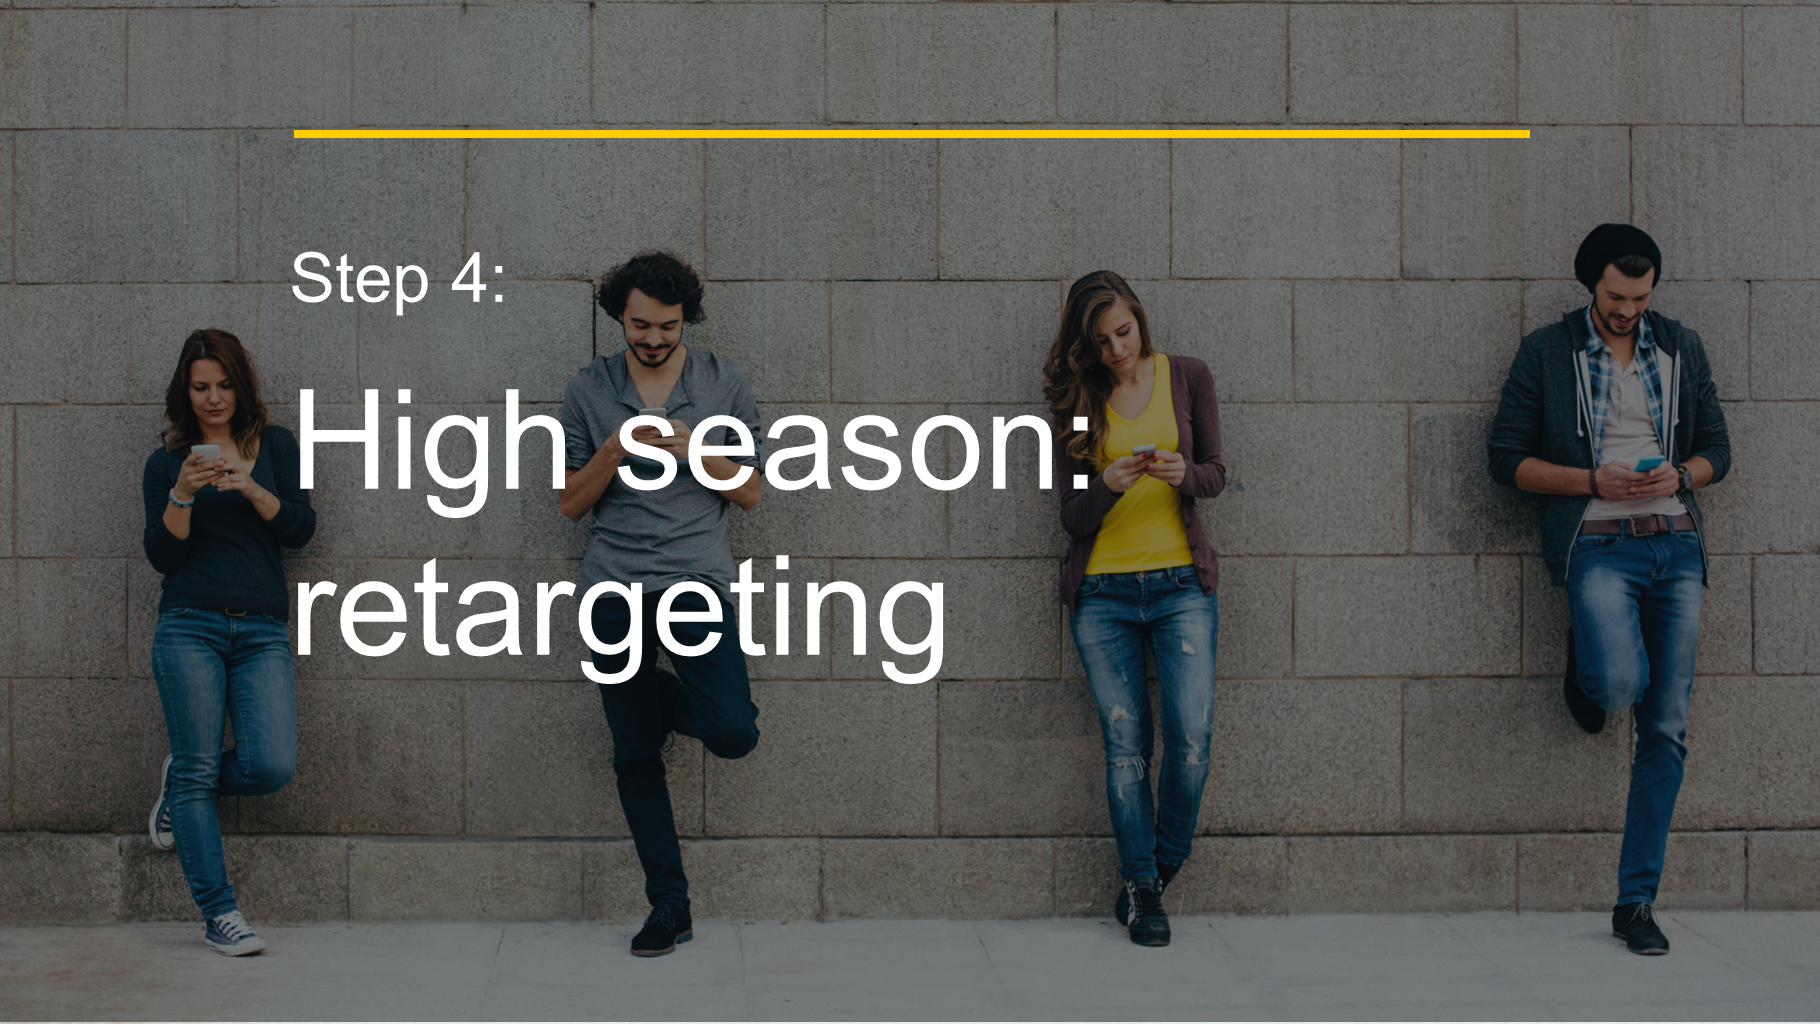 Step 4: High season: retargeting